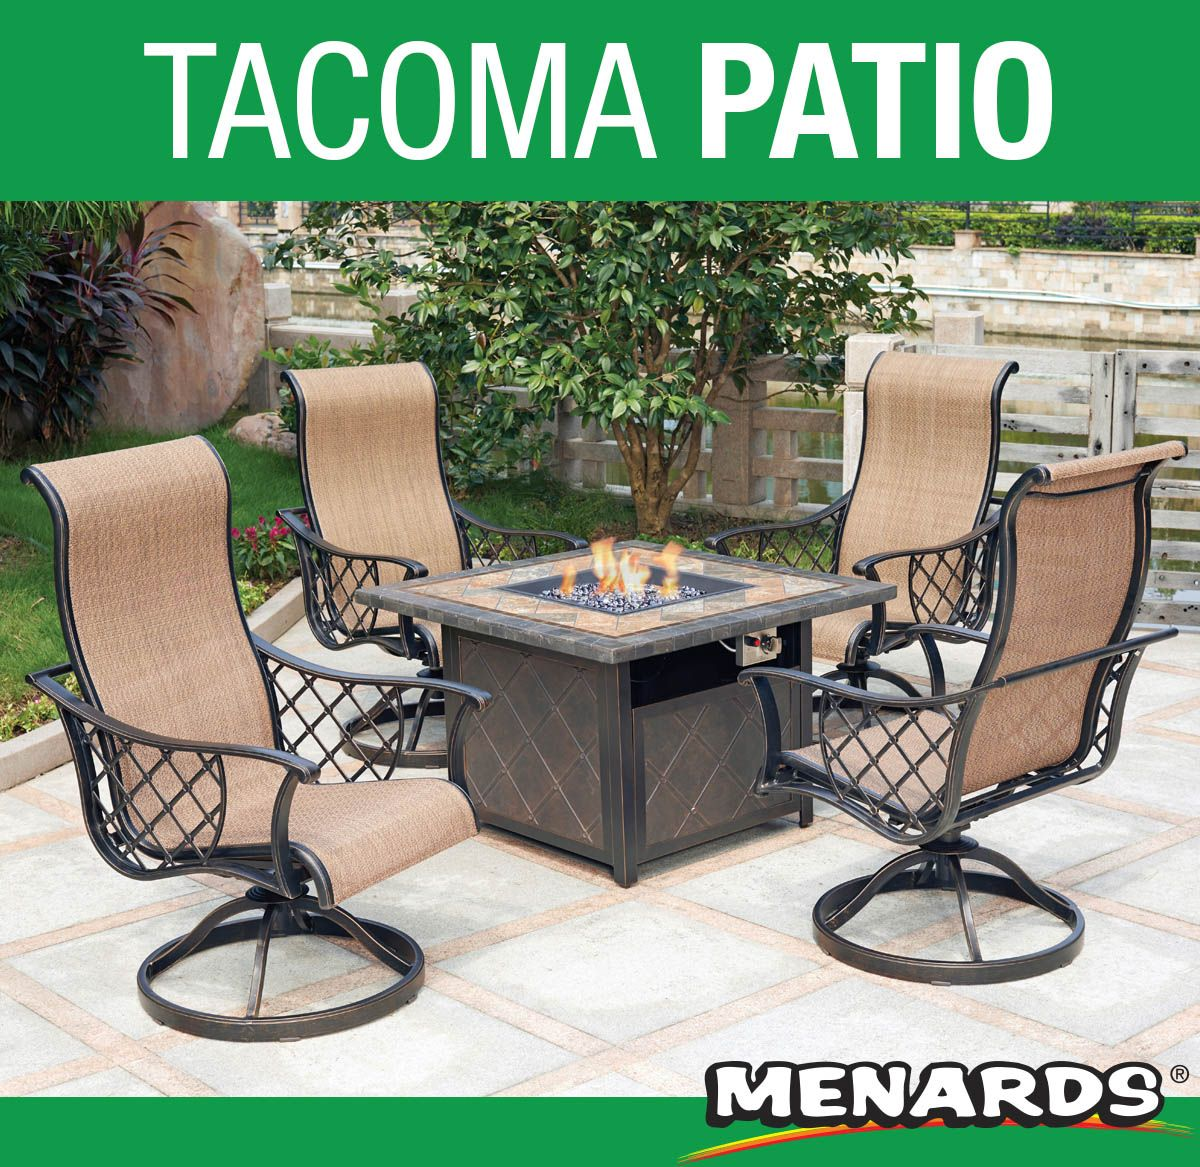 Add elegance and warmth to your backyard with the